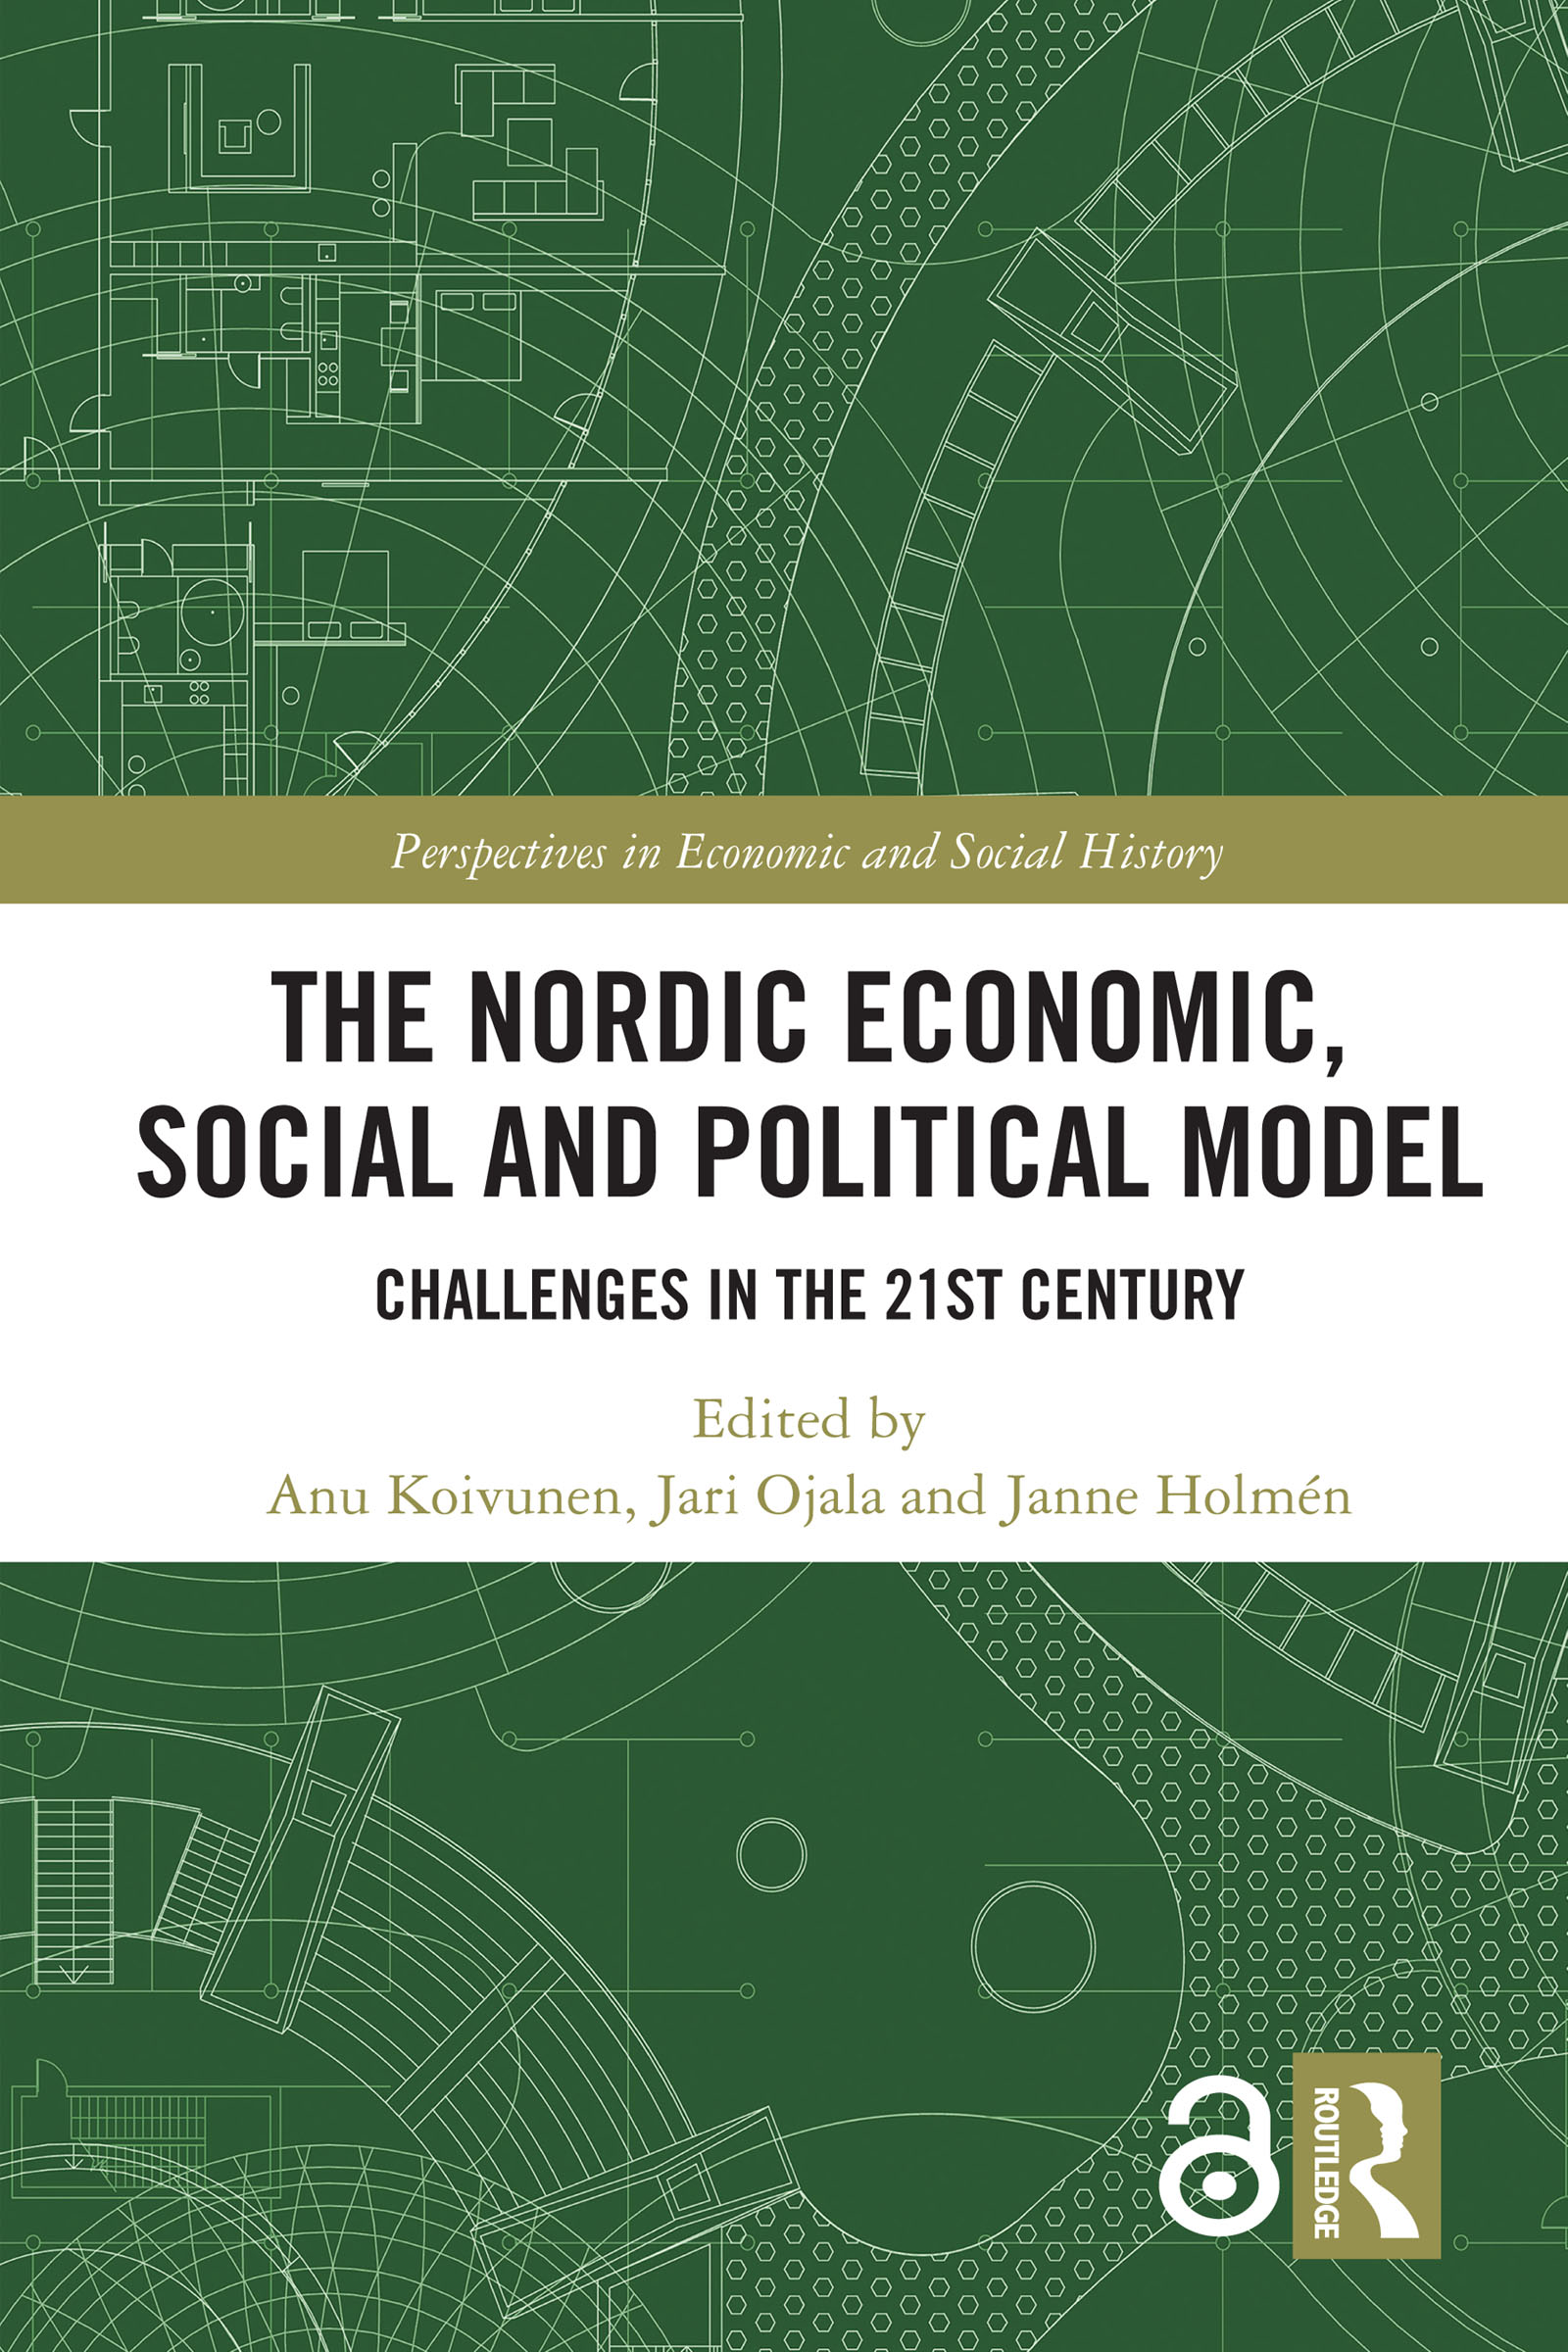 Adapting the Nordic welfare state model to the challenges of automation